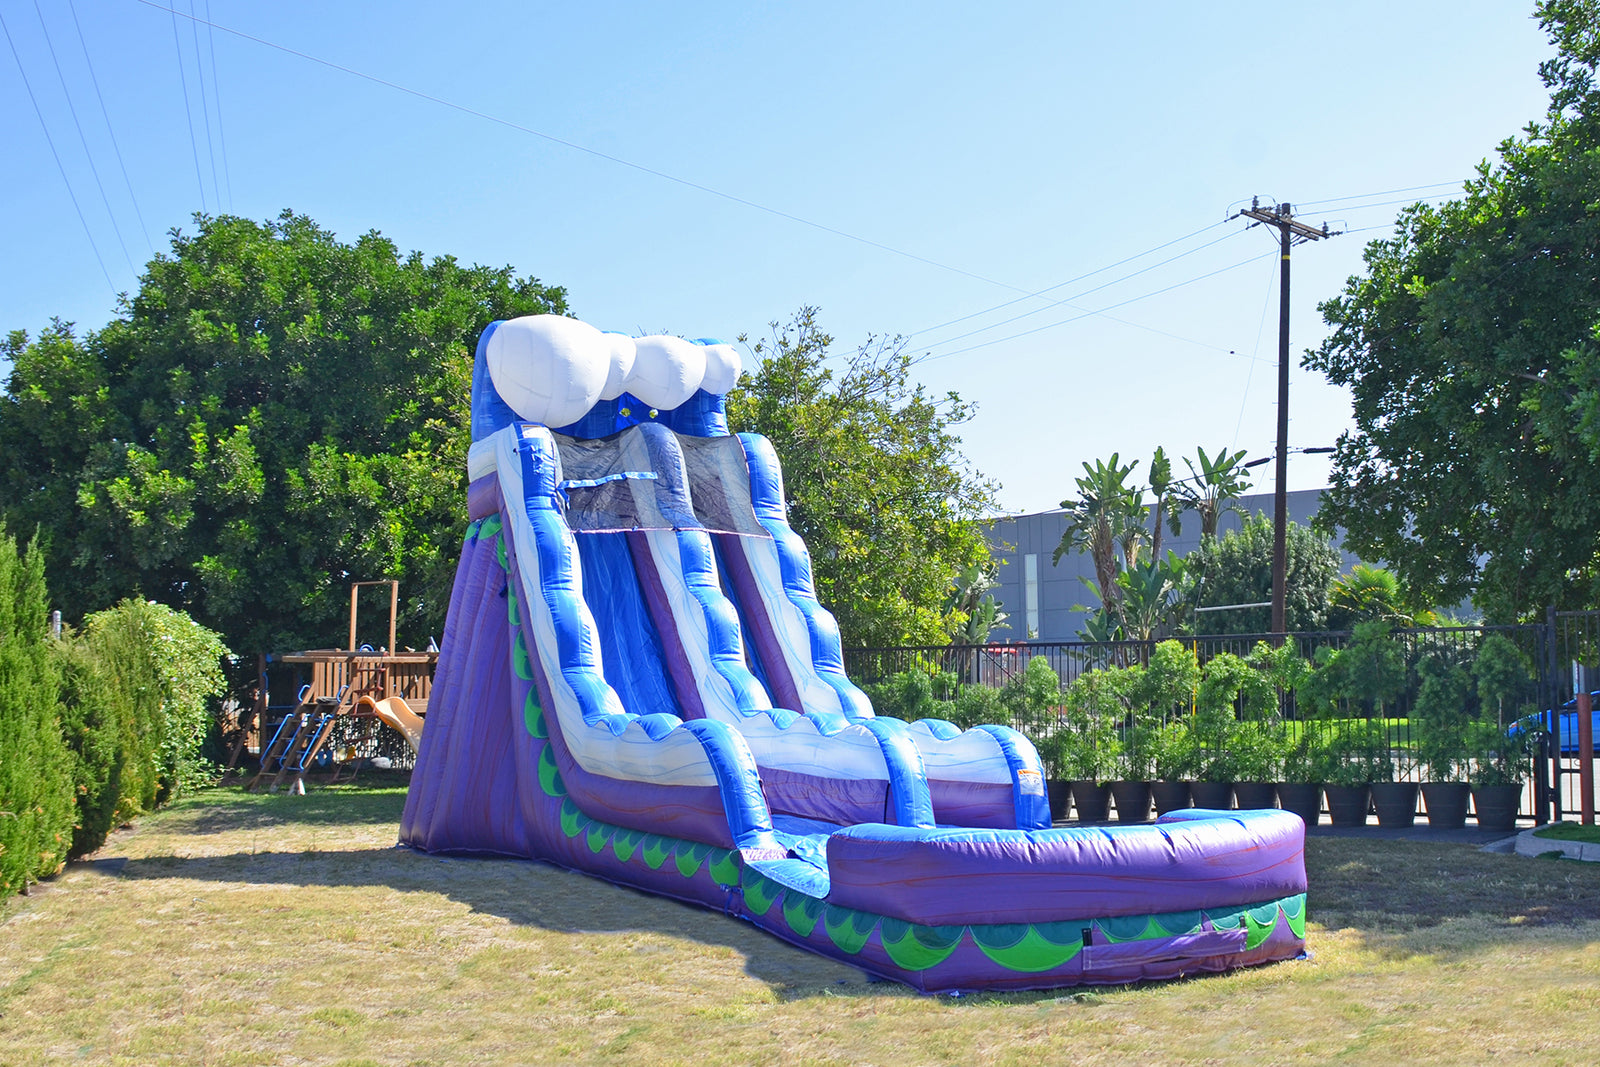 19 FT MERMAID SLIDE